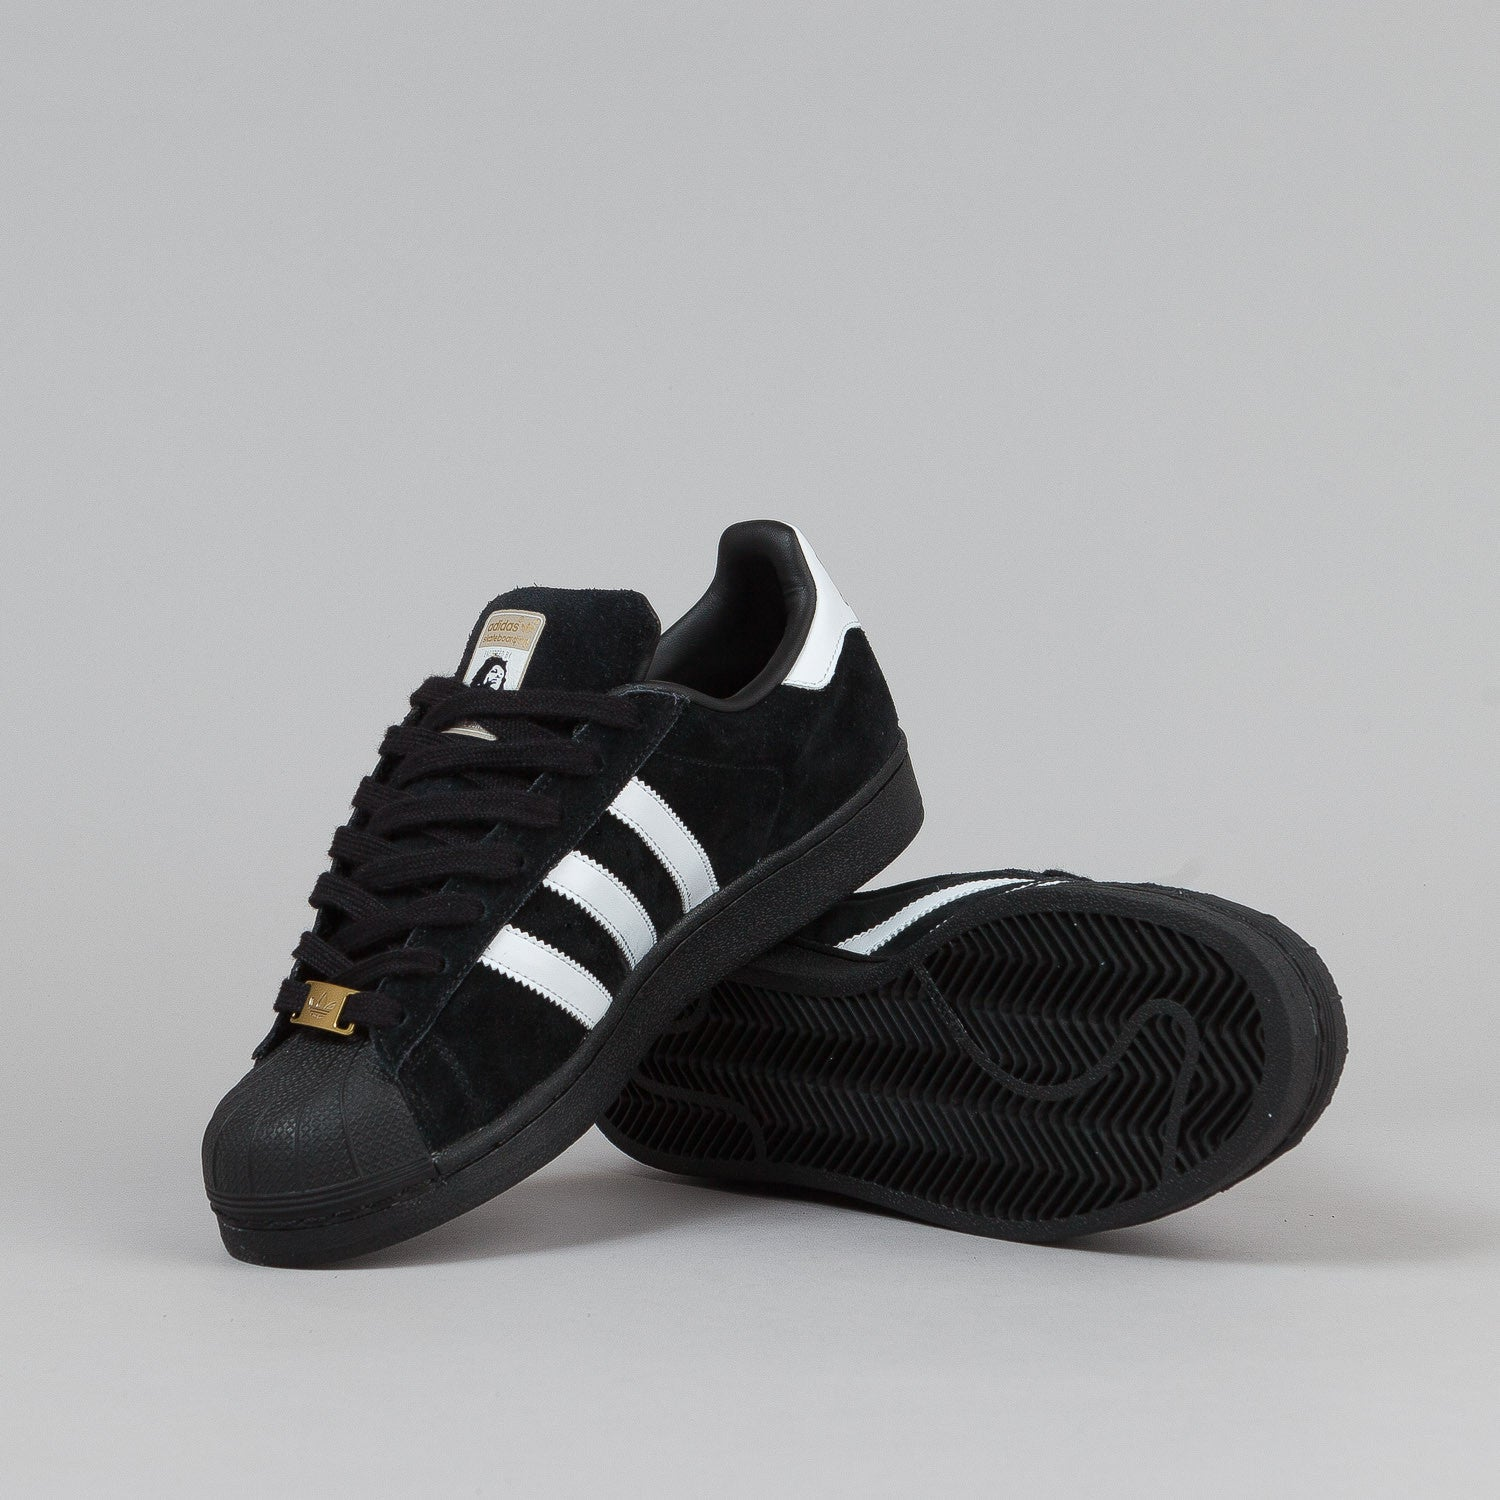 huge selection of b4645 fe859 black adidas superstar shoes with gold stripes Norwescap